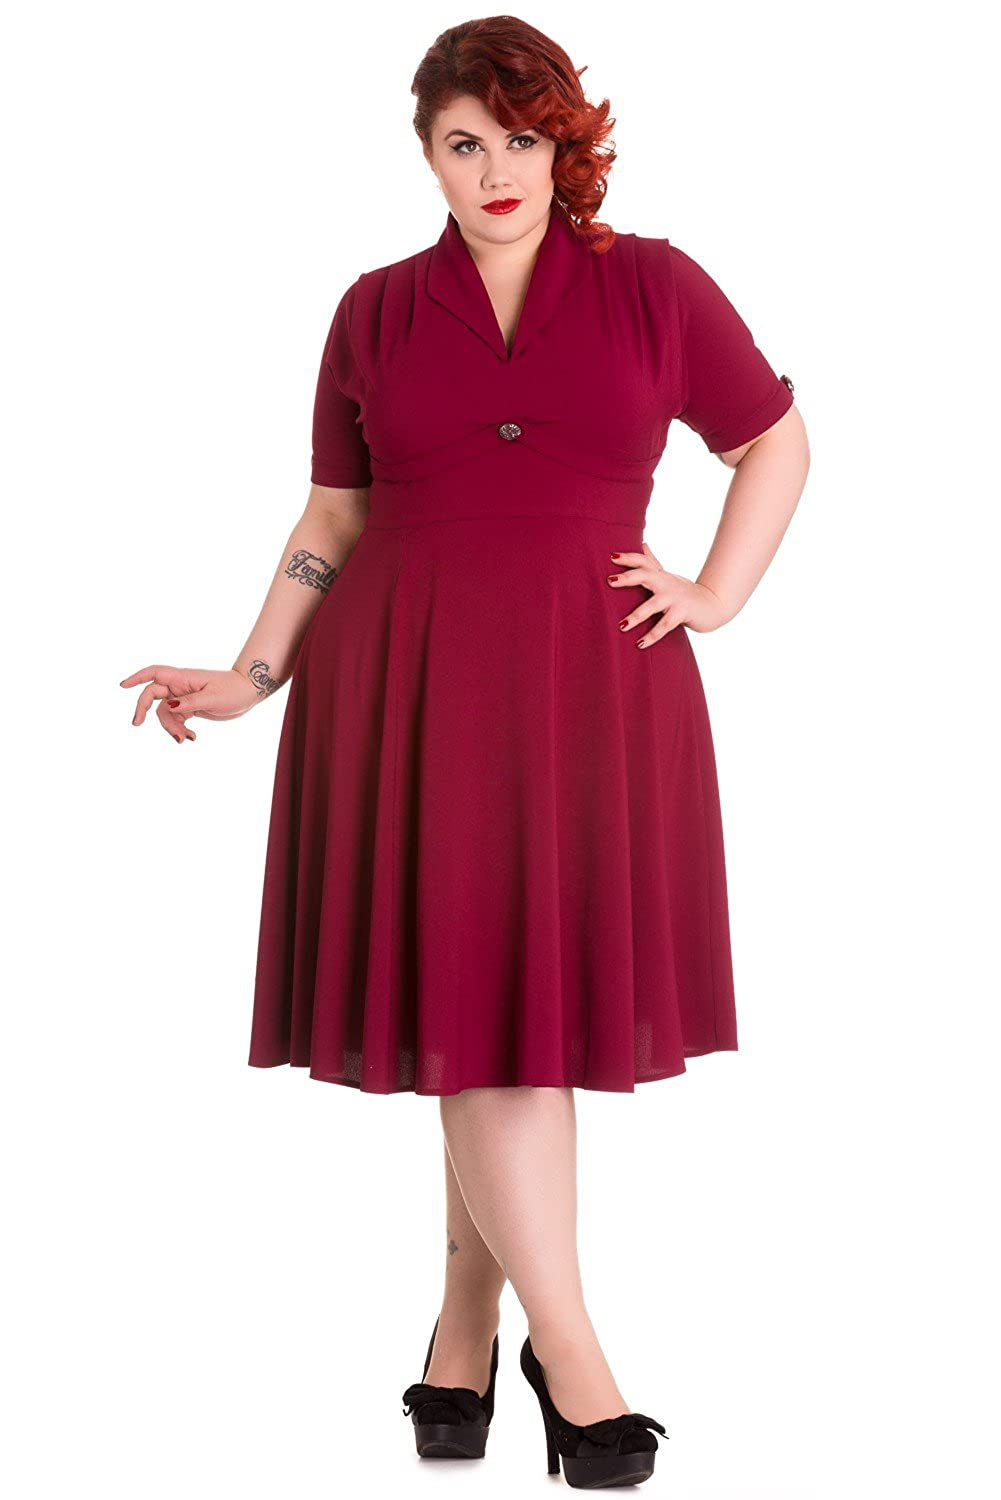 Plus Size Retro Dresses Hell Bunny Plus Size 60s Vintage Style Jocelyn Flare PartyDress $87.00 AT vintagedancer.com